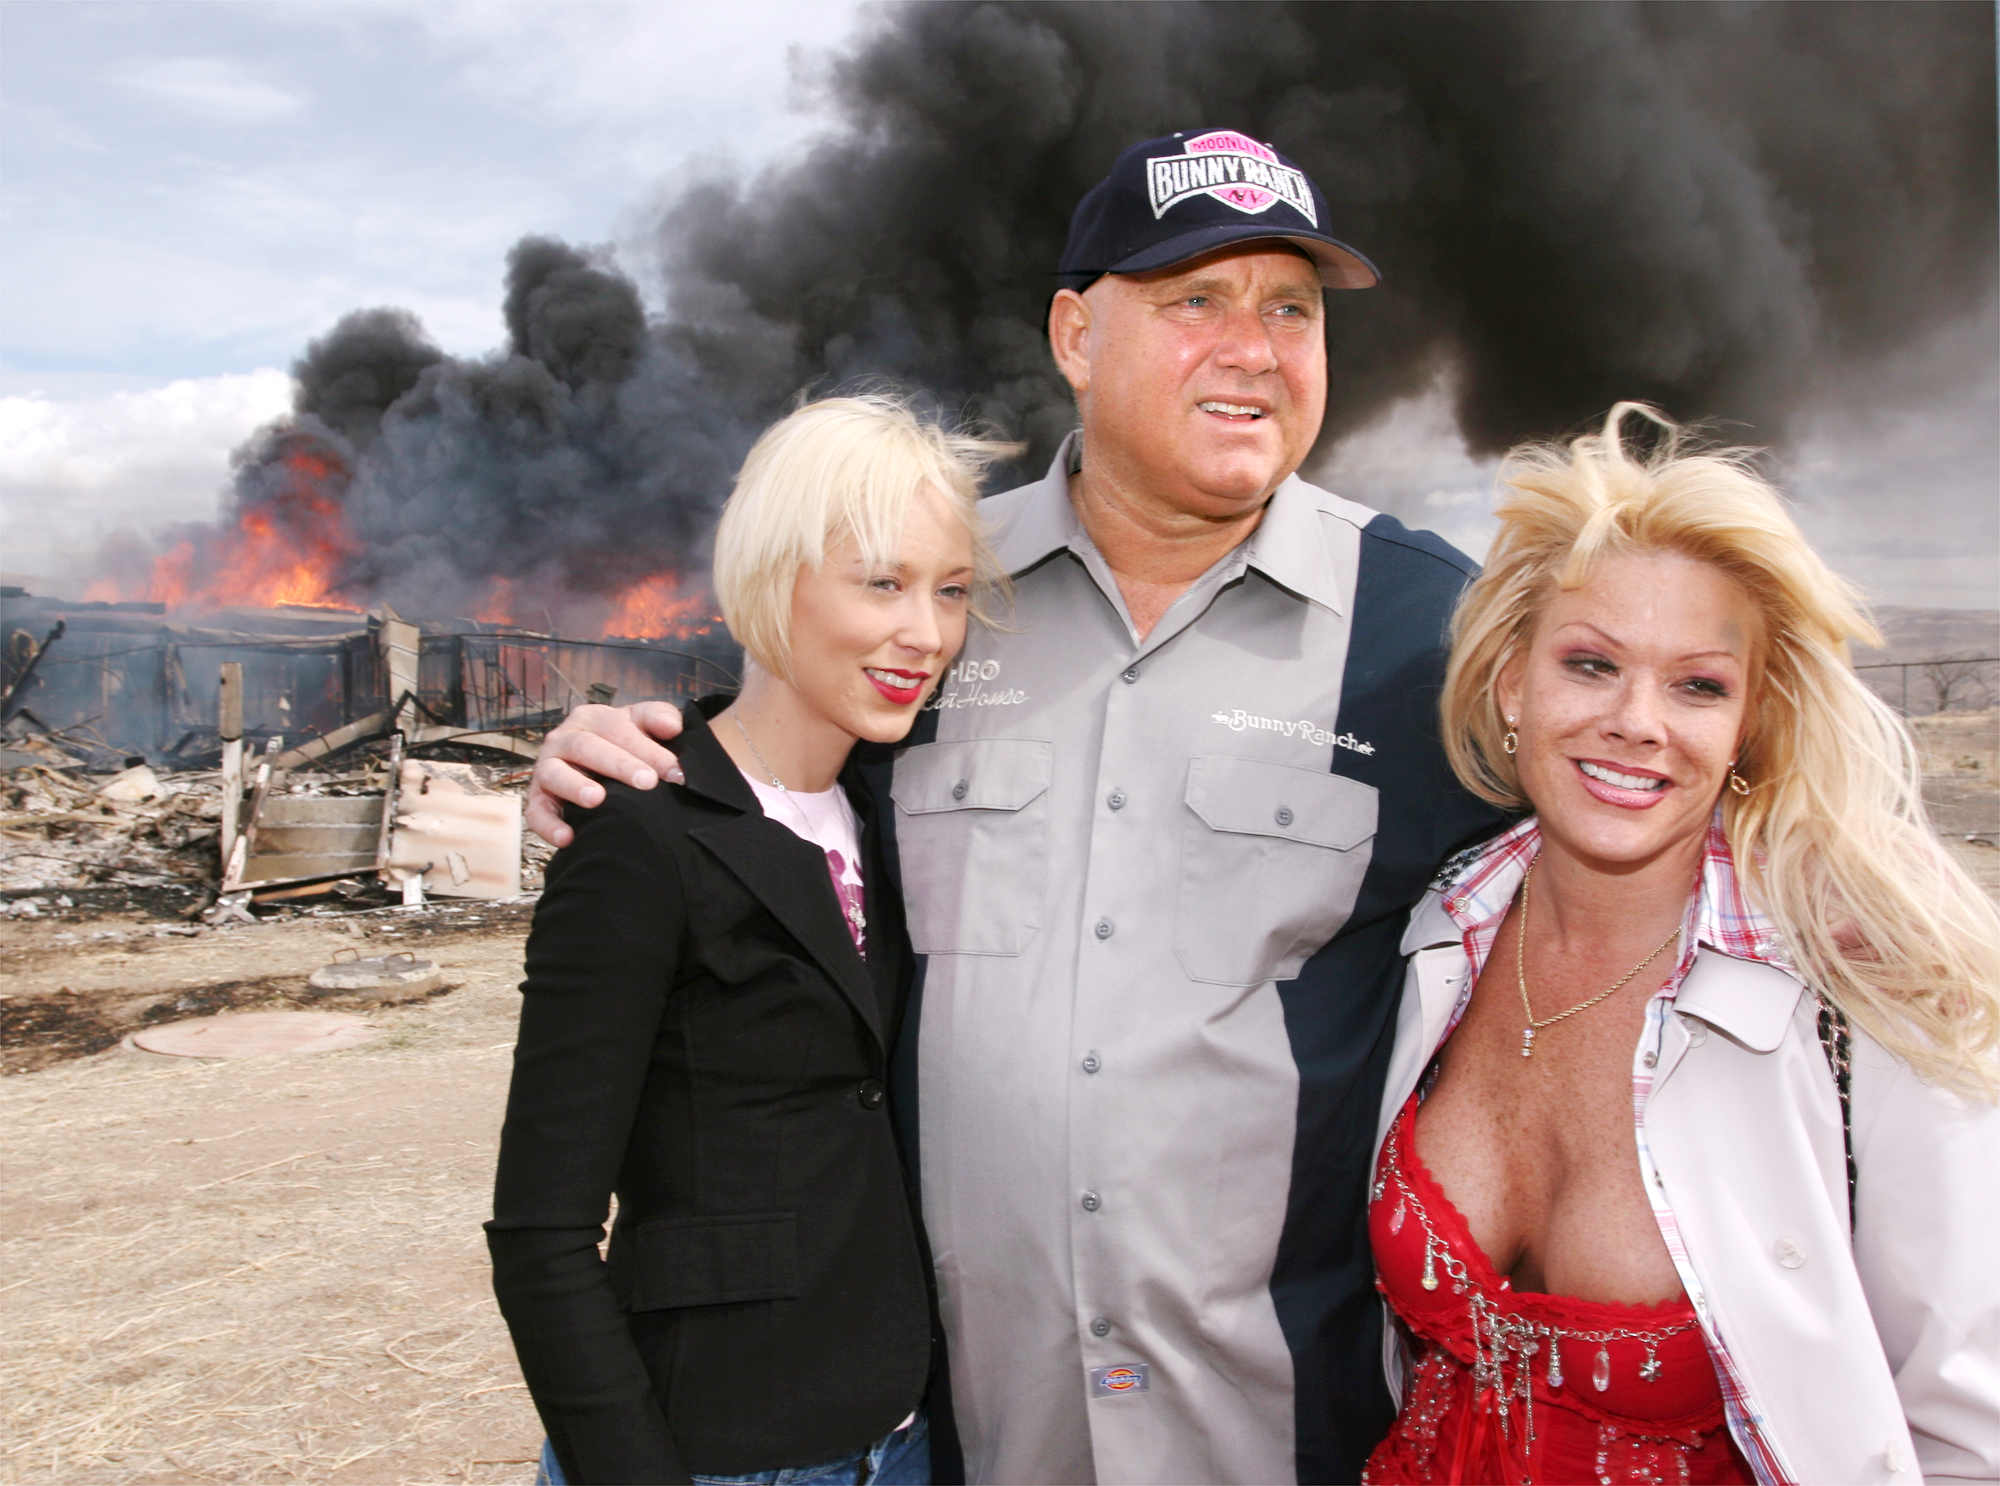 "Moonlite Bunnyranch brothel owner Dennis Hof poses with two of his ""working girls"" Brooke Taylor, left, and a woman working under the name ""Airforce Amy"", right, as firefighters burn down remains of the former Mustang Ranch 2 brothel east of Reno, Nevada (AP Photo/Debra Reid)"